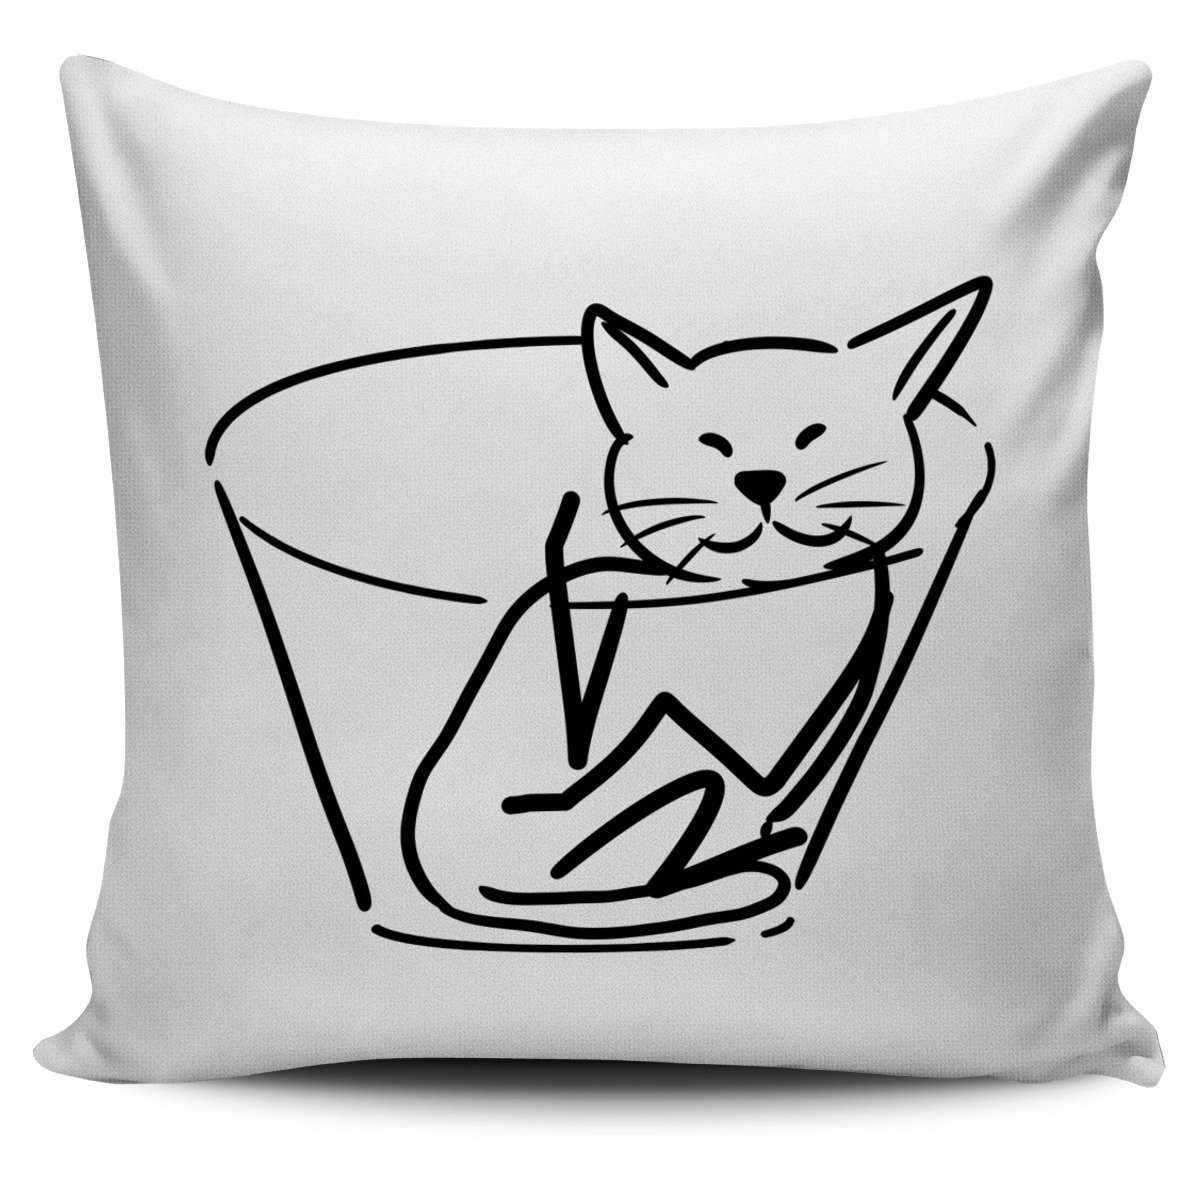 Chilled Cat white Pillow Umisfashion Store